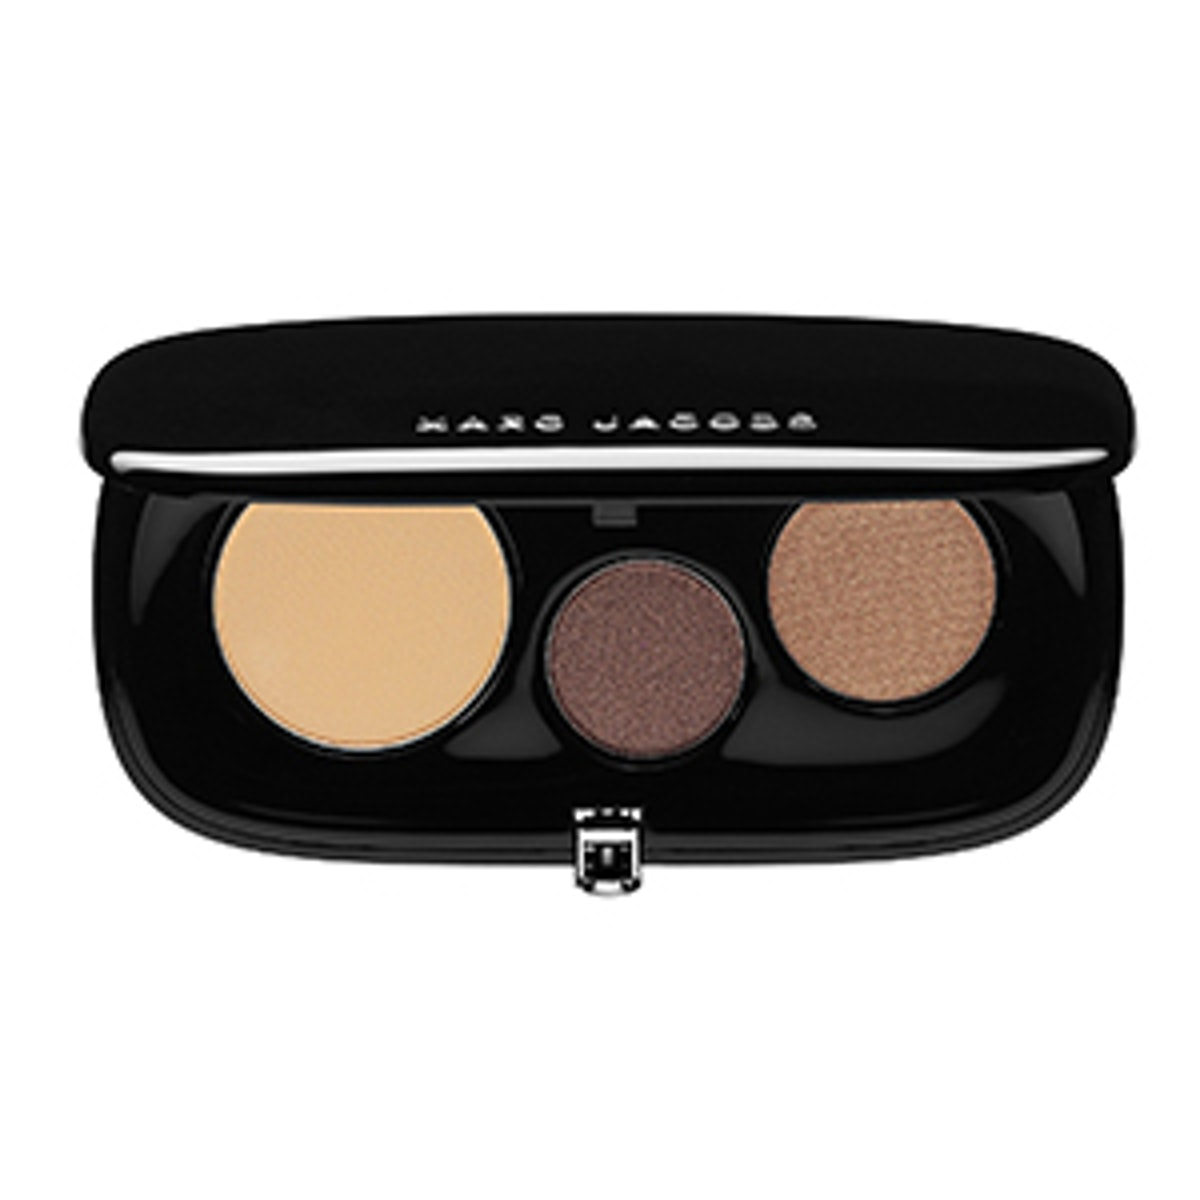 Style Eye-Con No.3 Plush Shadow in The Glam